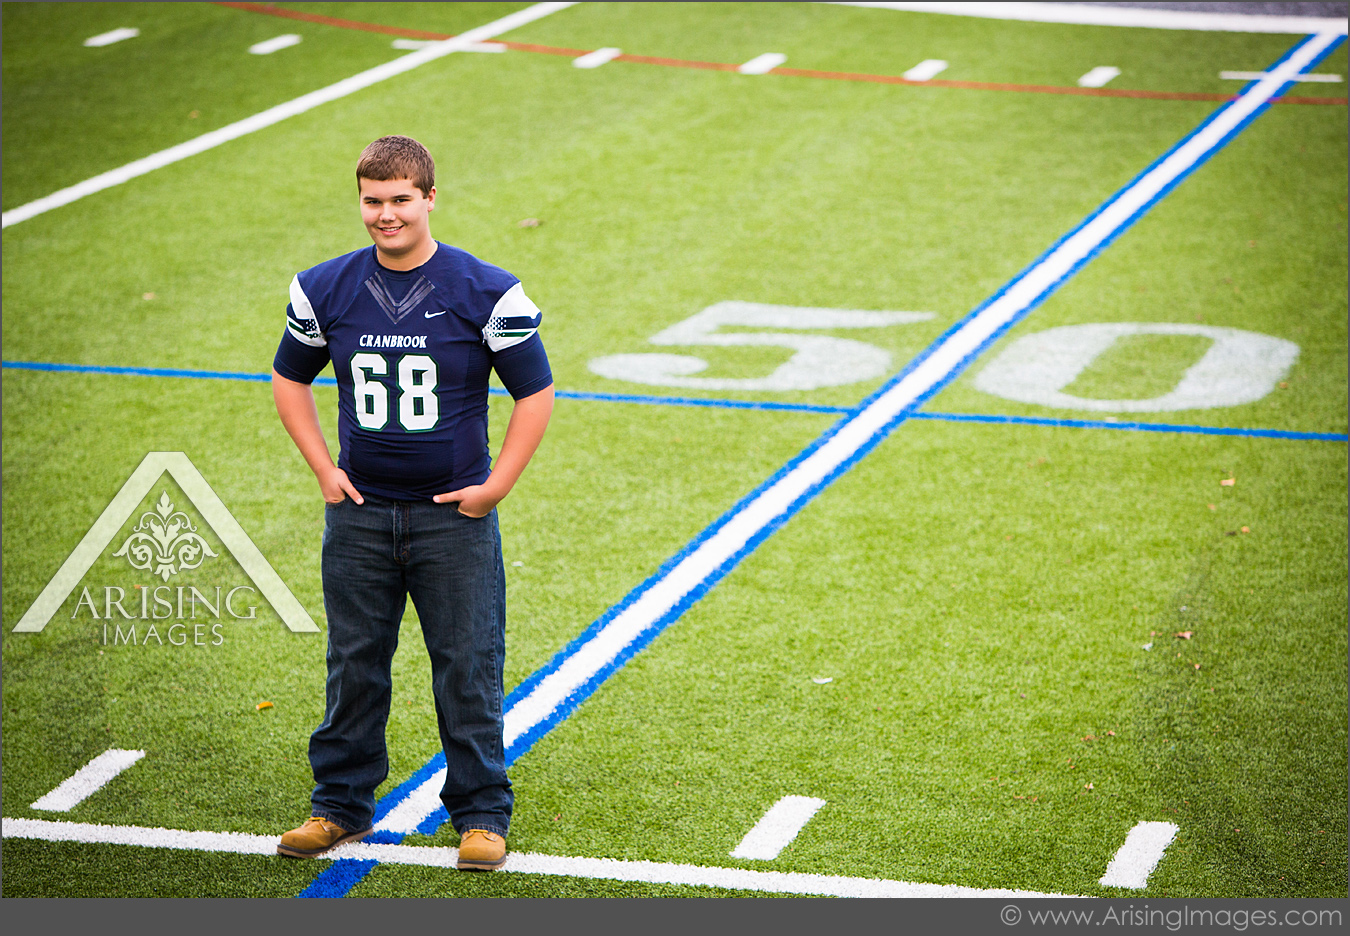 michigan sports senior pictures on a football field